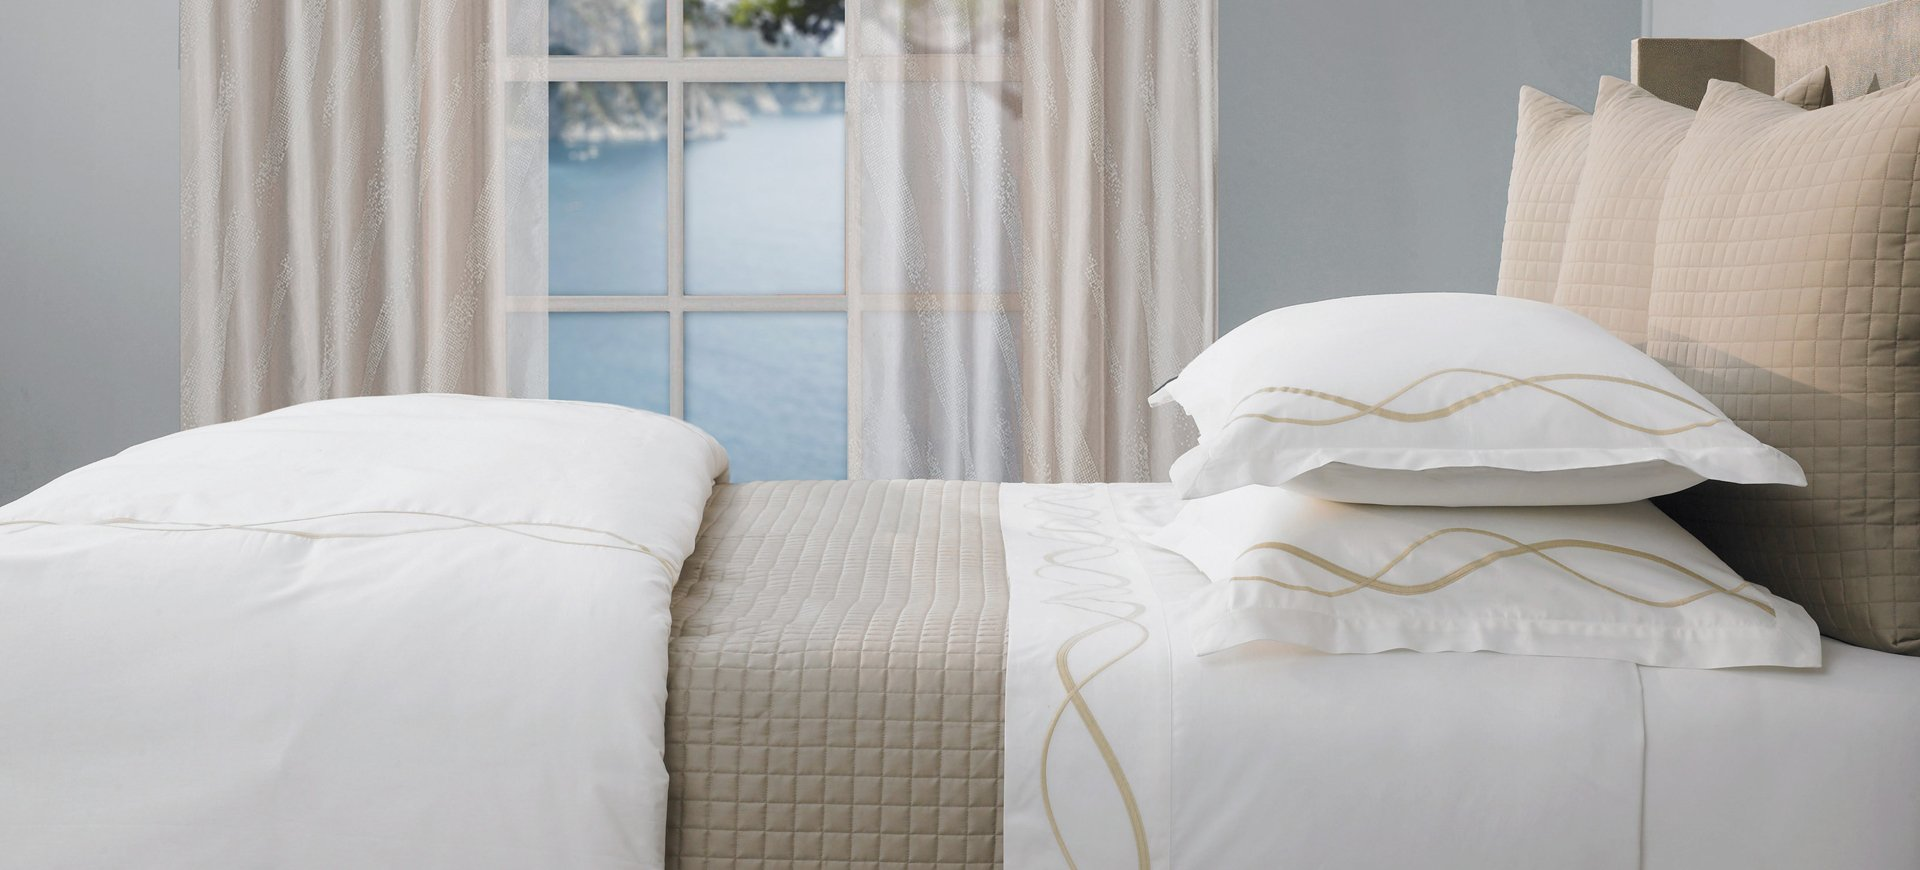 Why Bedding Makes a Great Wedding Gift